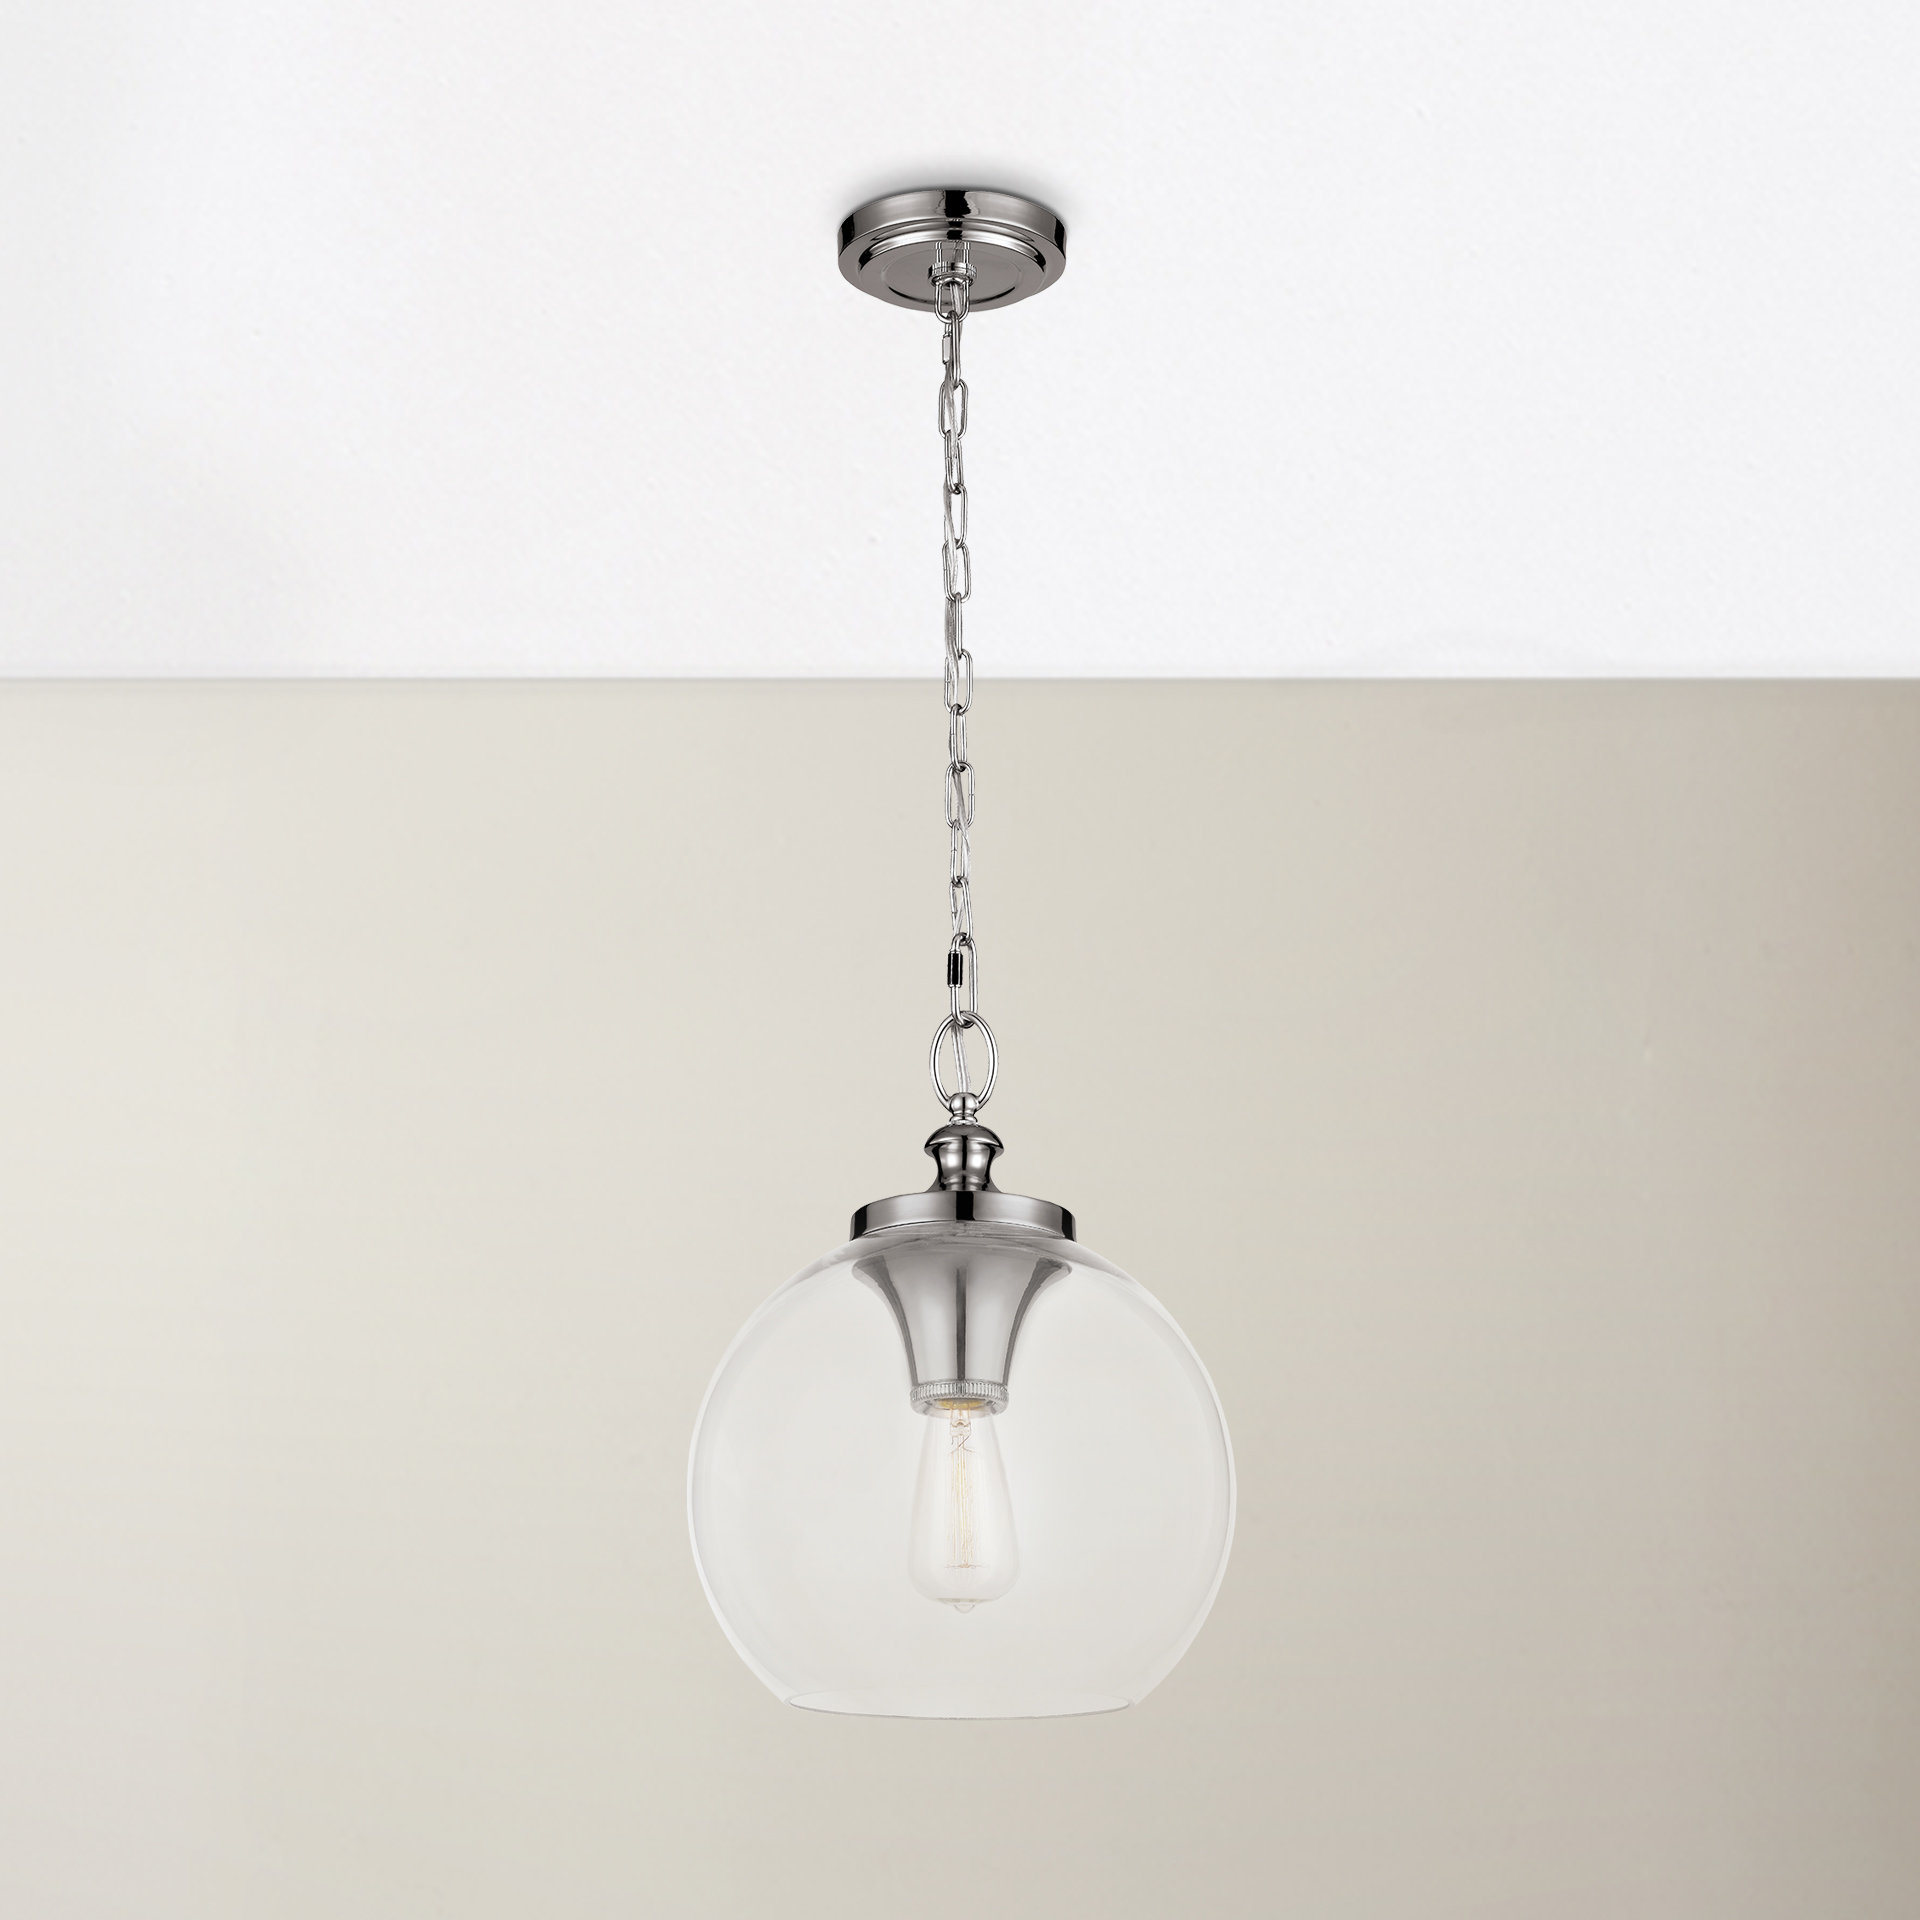 Asellus 1 Light Single Globe Pendant For Most Recently Released Nolan 1 Light Single Cylinder Pendants (View 7 of 25)